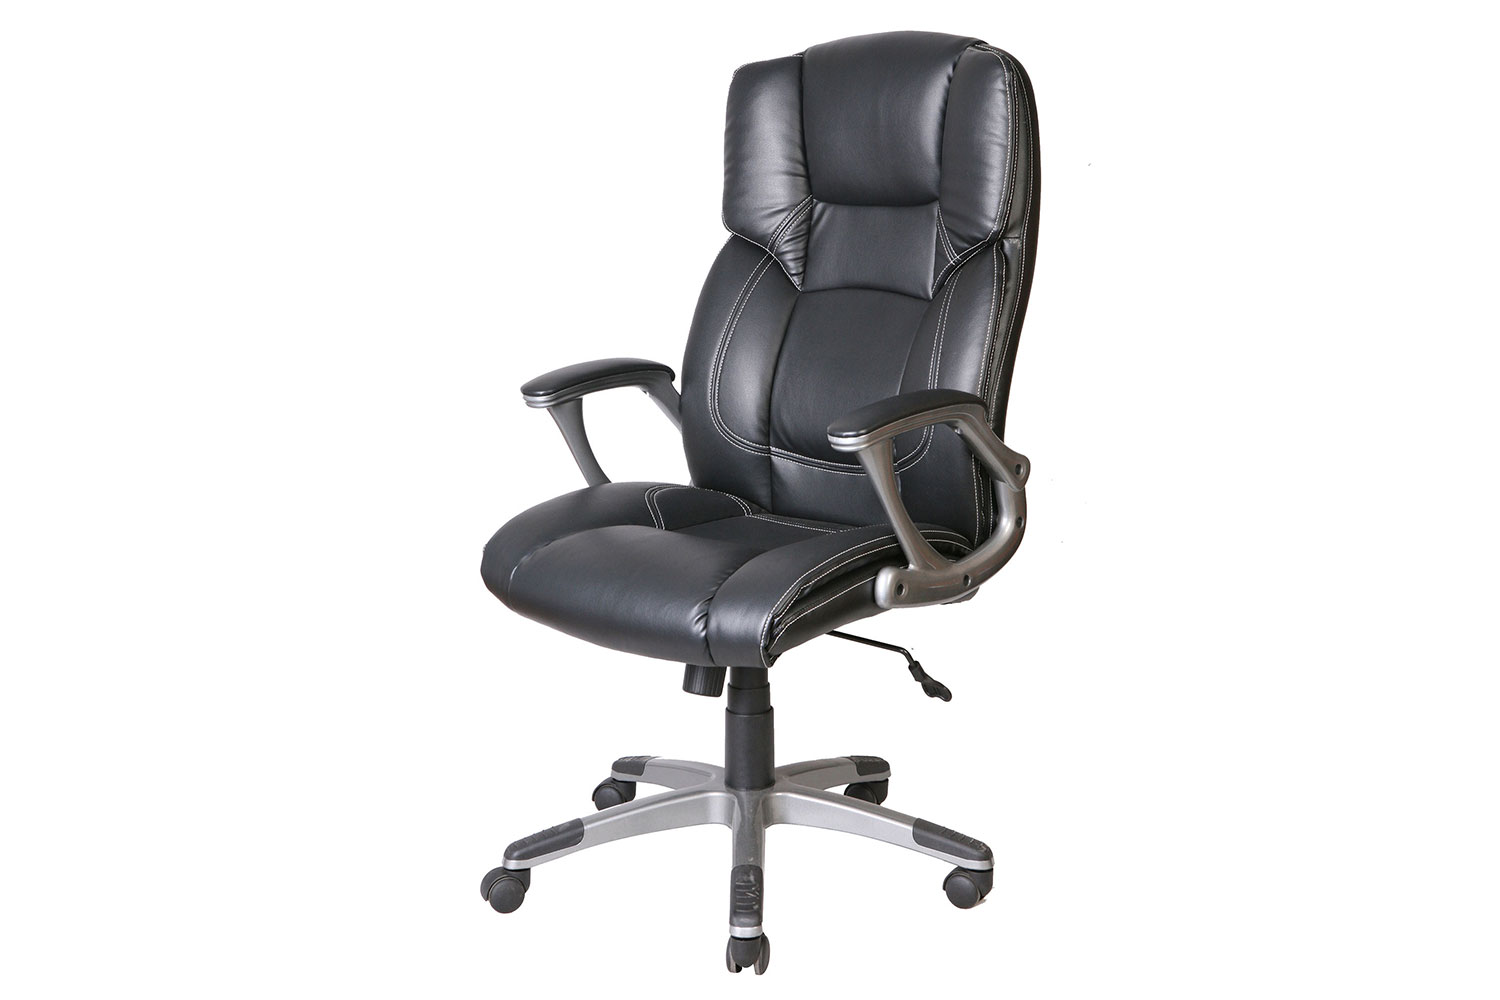 ergonomic chair harvey norman comfy chairs for toddlers drake office new zealand